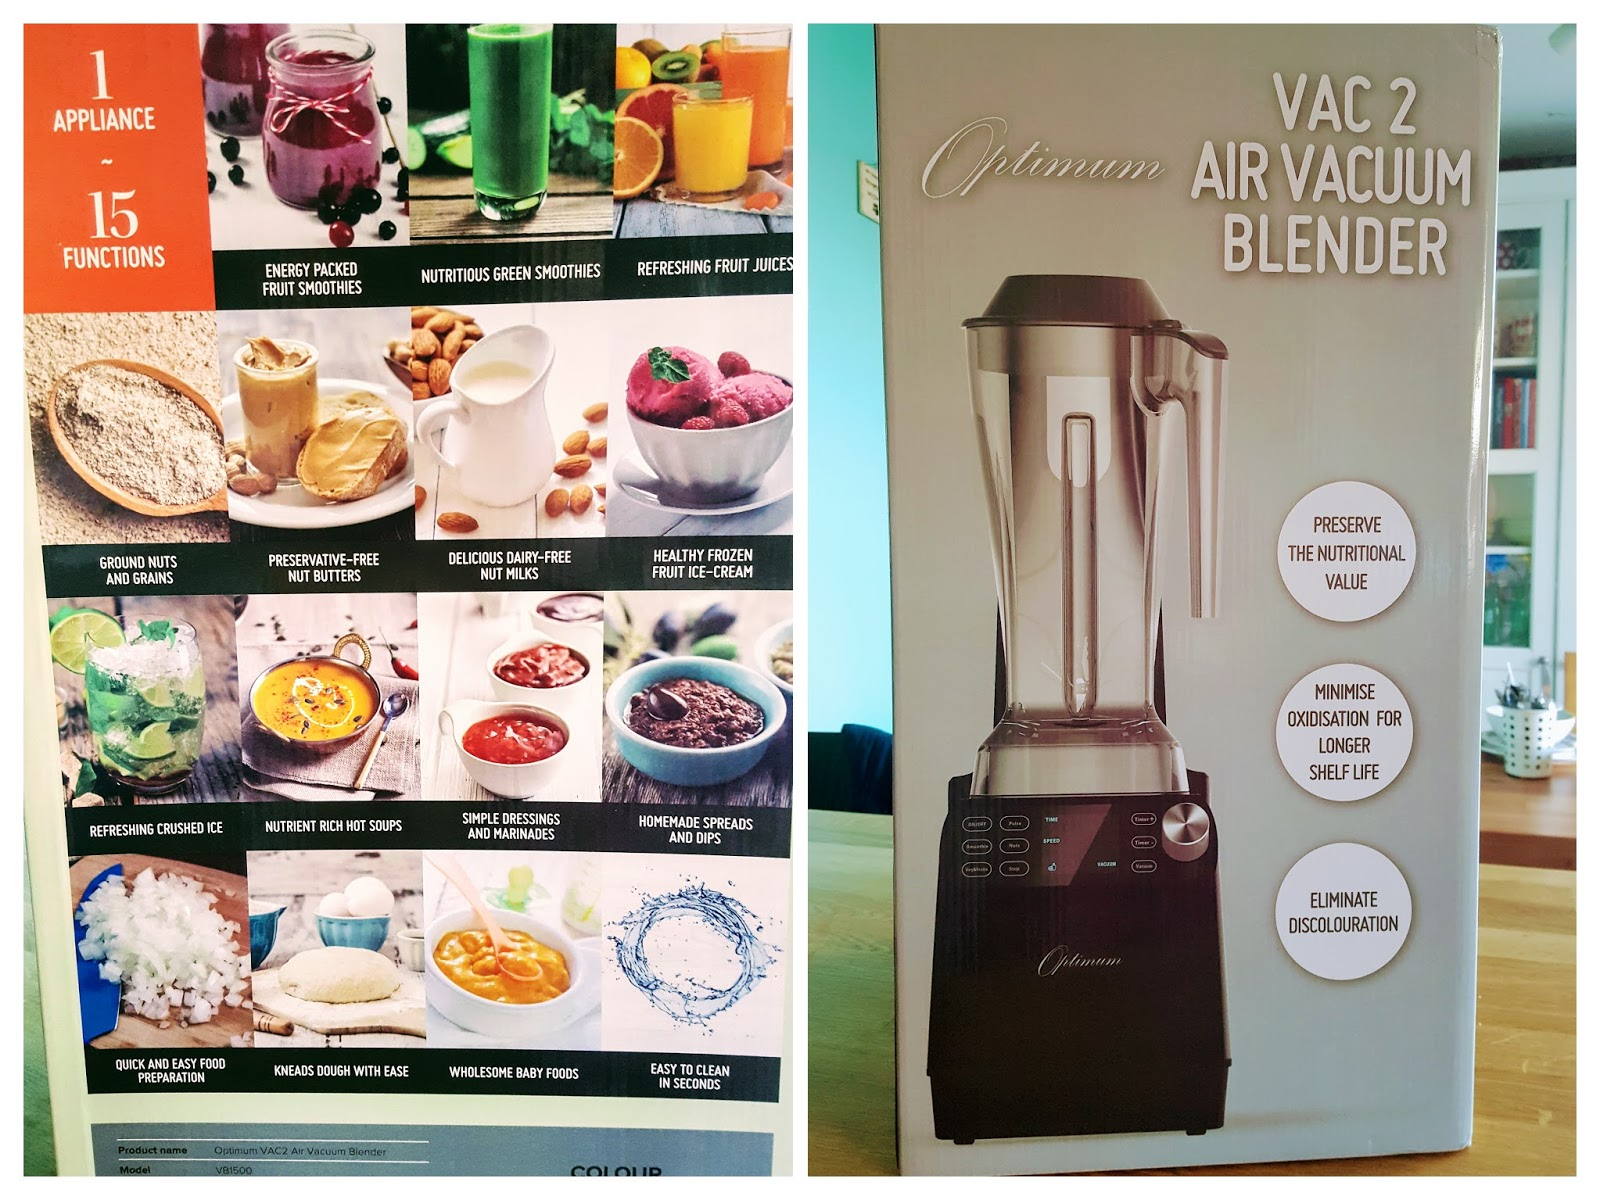 Optimum Vac 2 Air Vacuum Blender